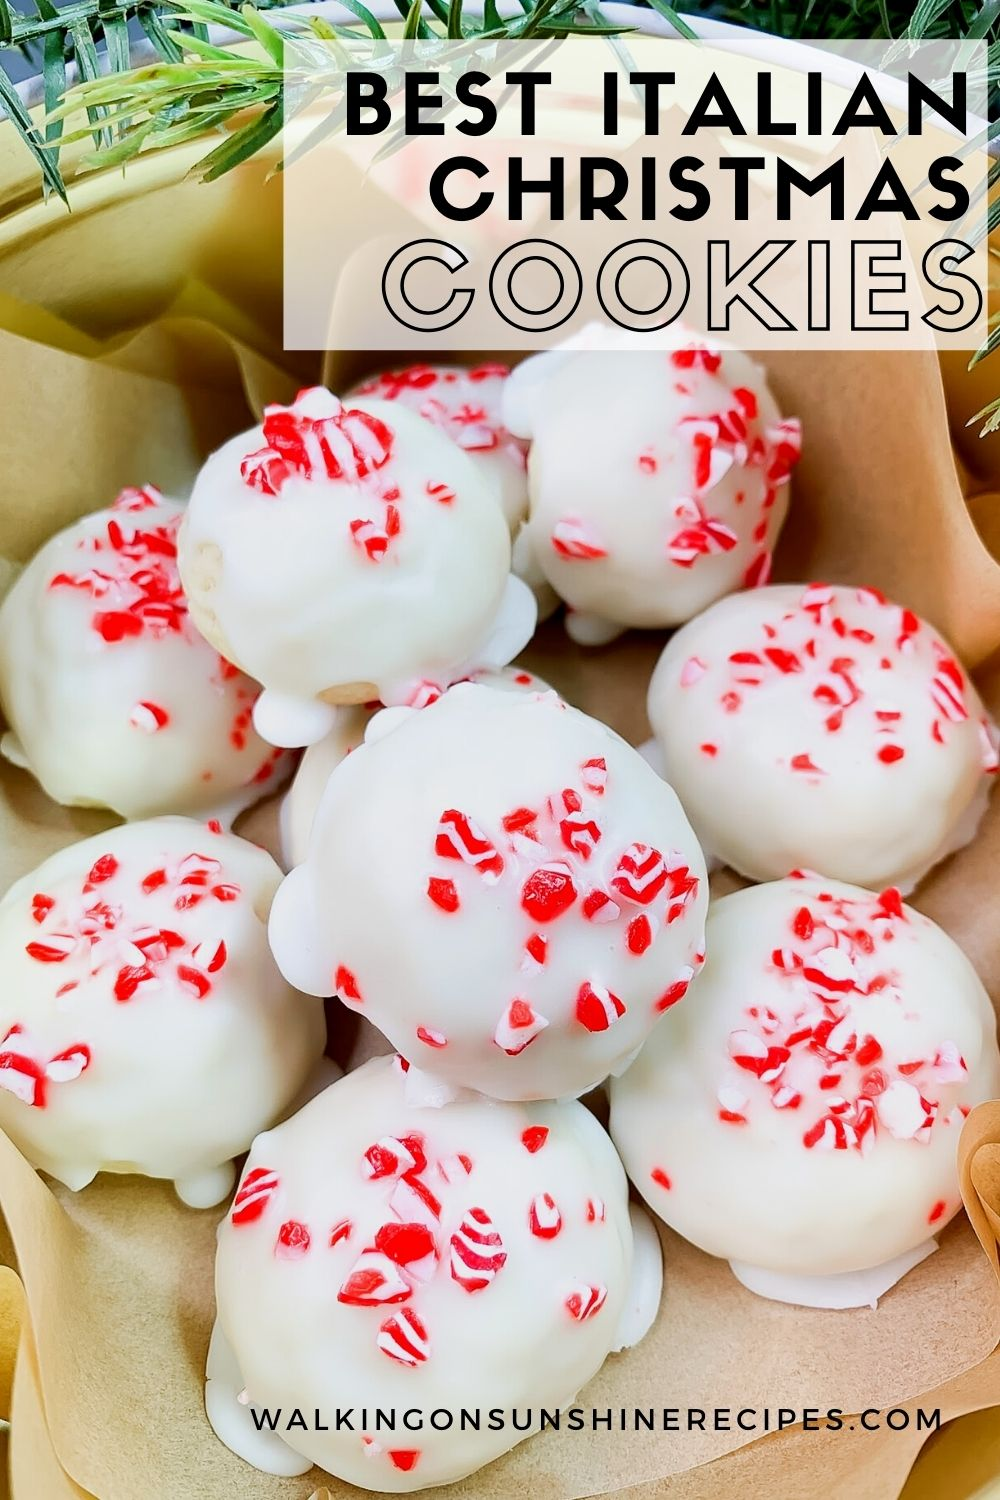 Glazed cookies with crushed peppermint candies.